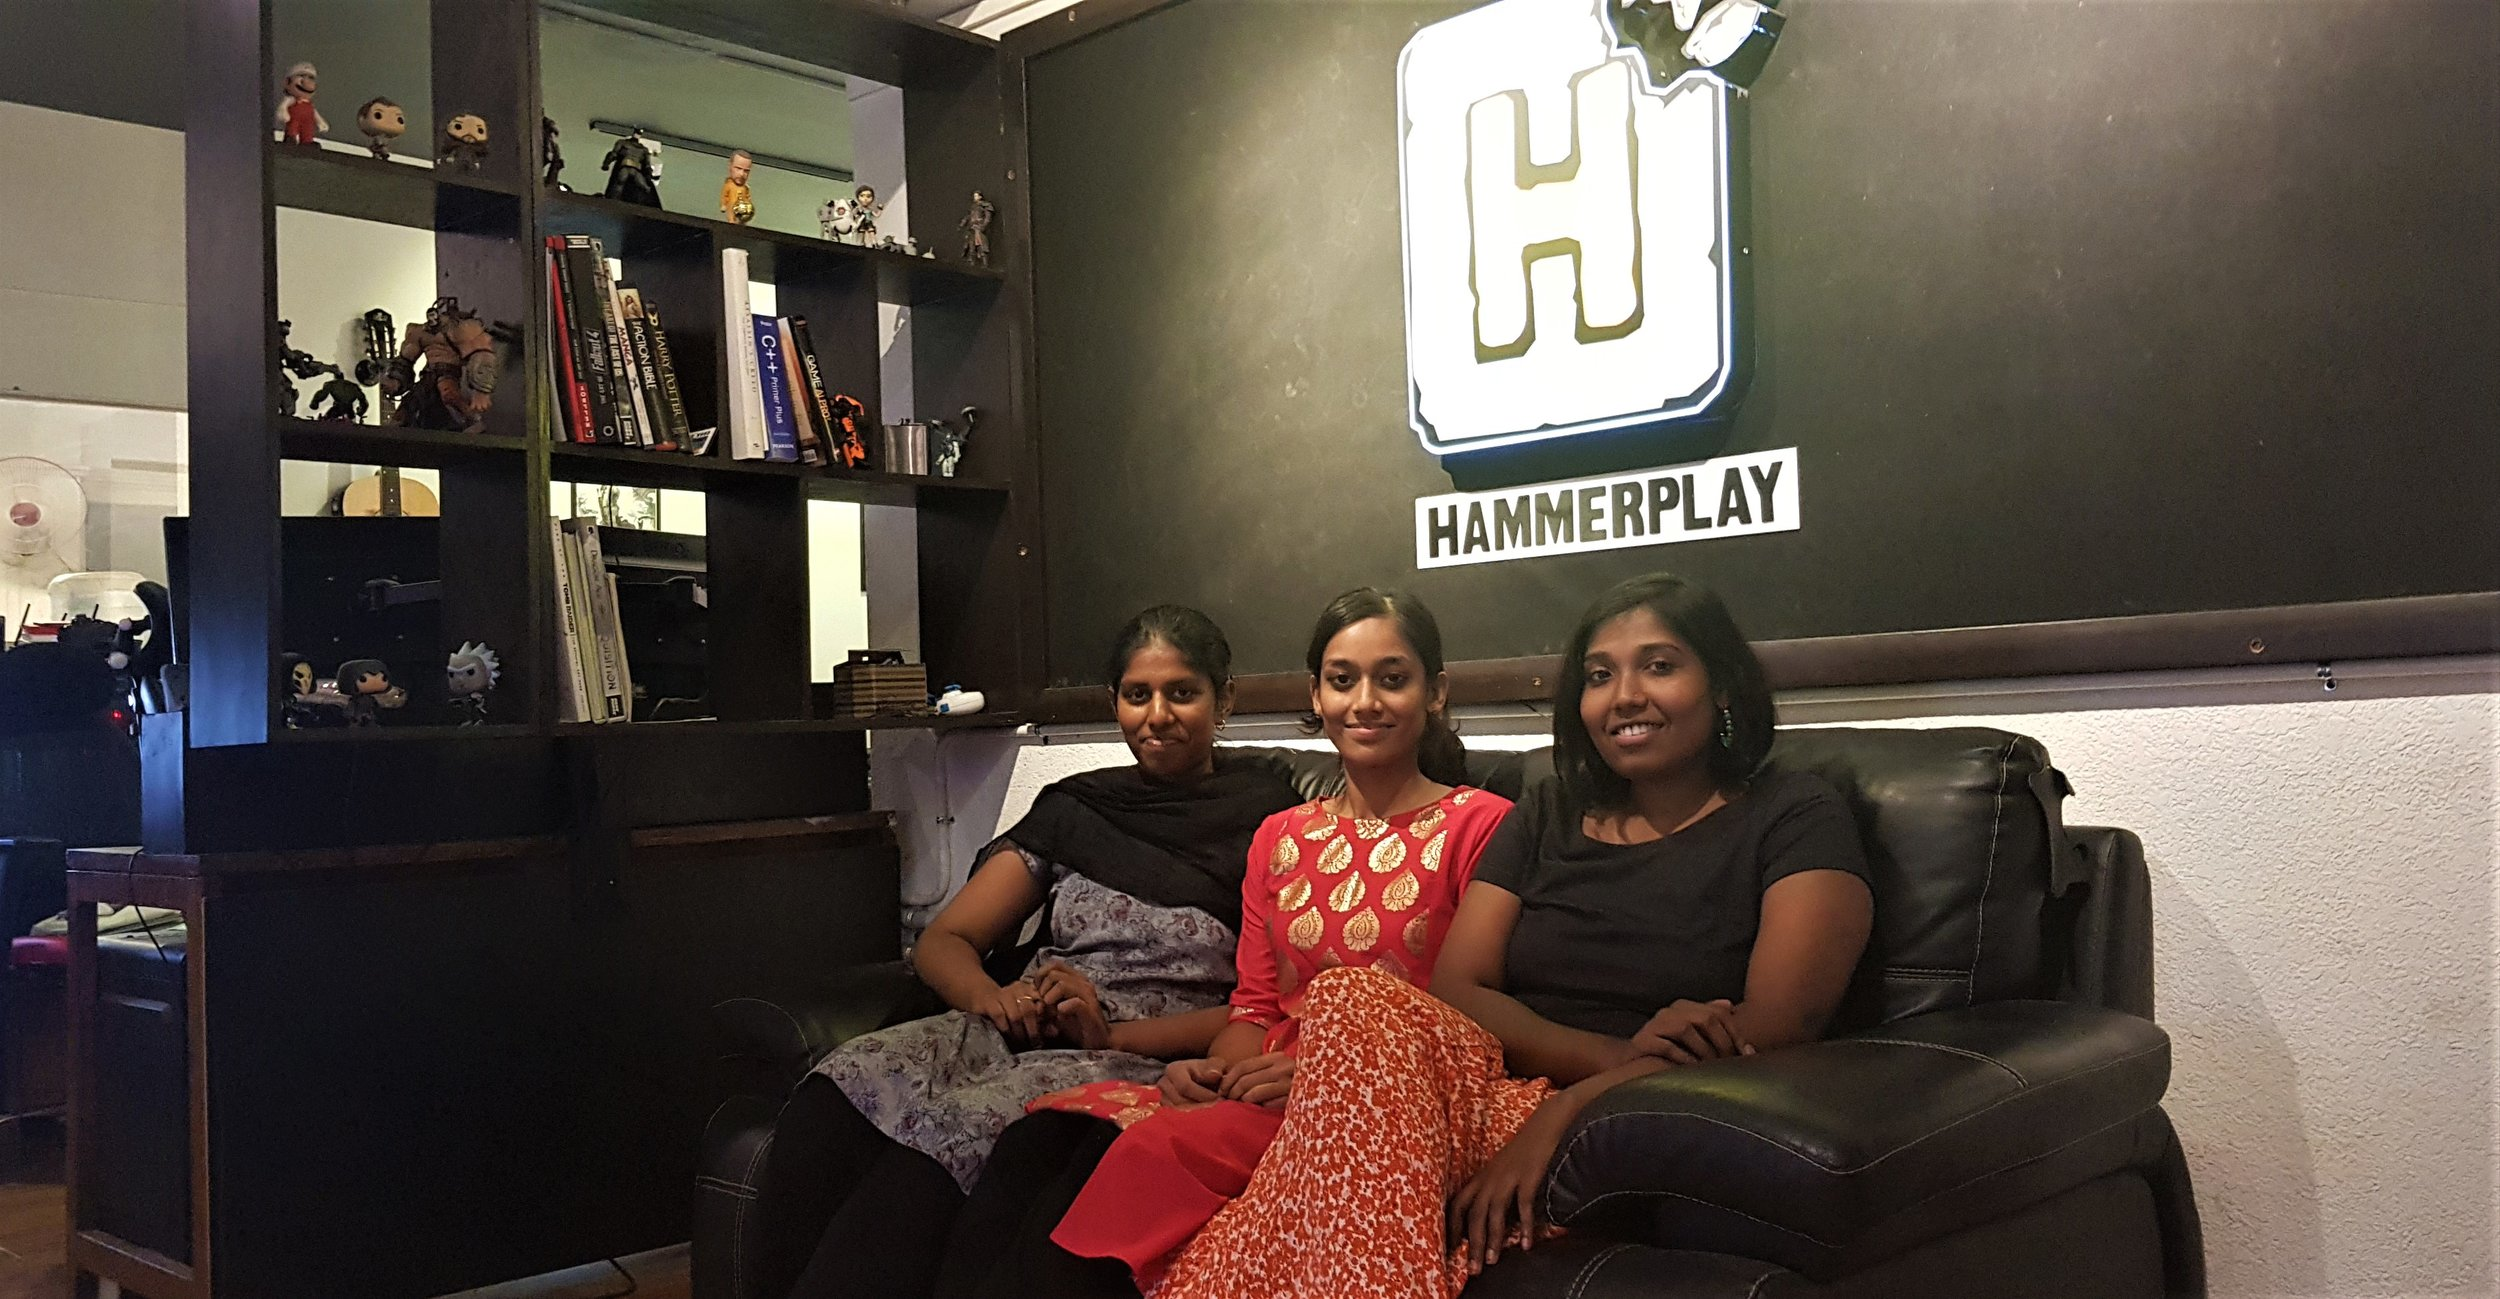 Women in Game development at Hammerplay!